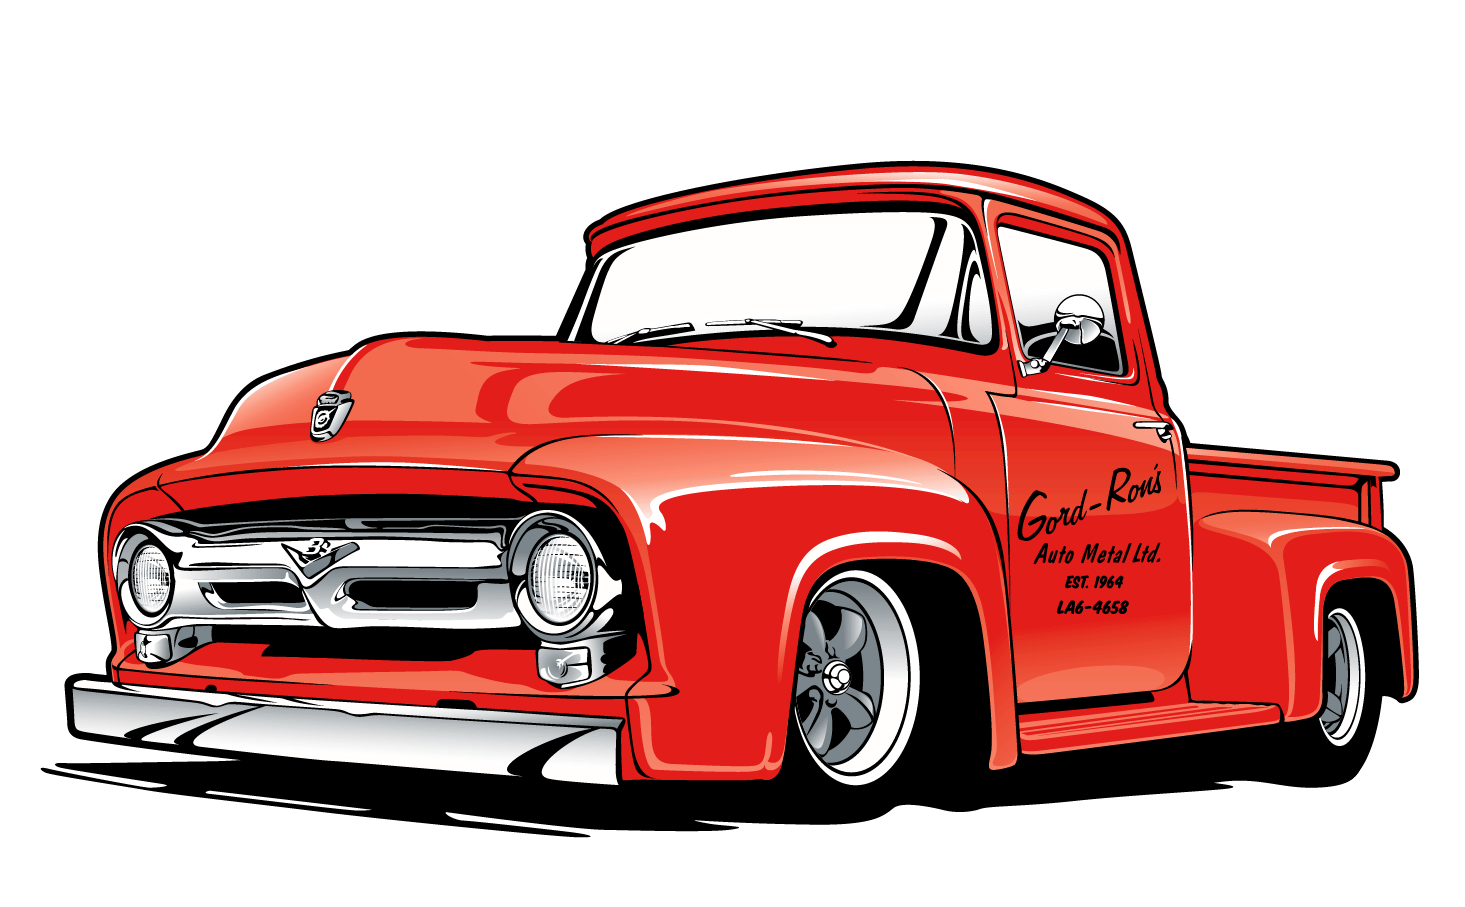 hight resolution of the final print is 3 spot colors on white t shirts this art features their lovingly restored 1953 ford truck that is mildly modified